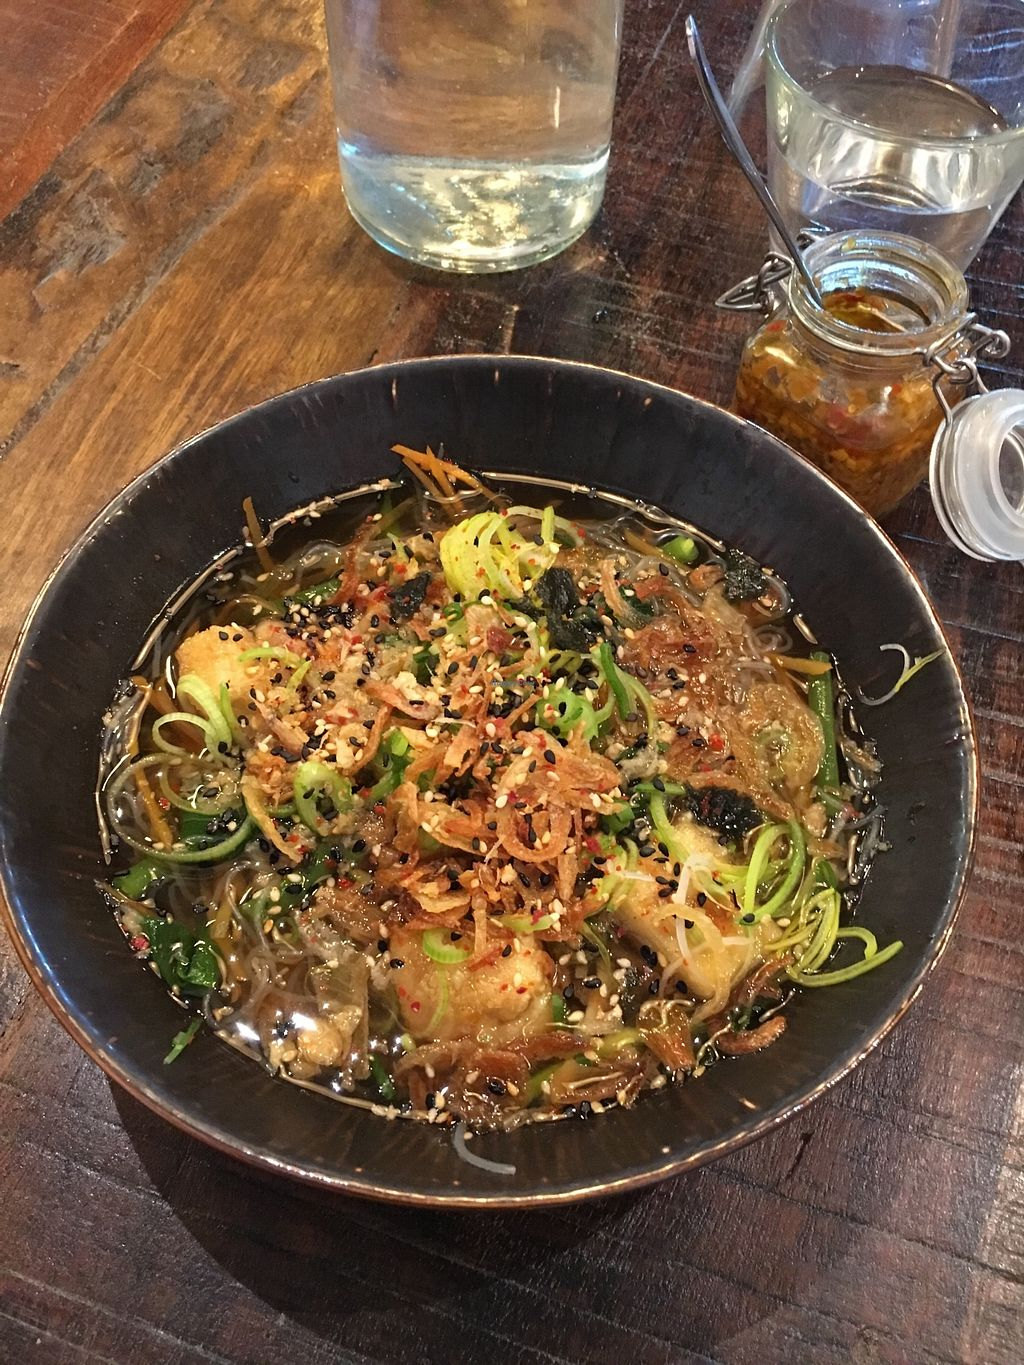 """Photo of Pobre  by <a href=""""/members/profile/SeitanSeitanSeitan"""">SeitanSeitanSeitan</a> <br/>Vegetarian Lomi and superb garlic and chili paste.  <br/> April 14, 2018  - <a href='/contact/abuse/image/117615/385567'>Report</a>"""